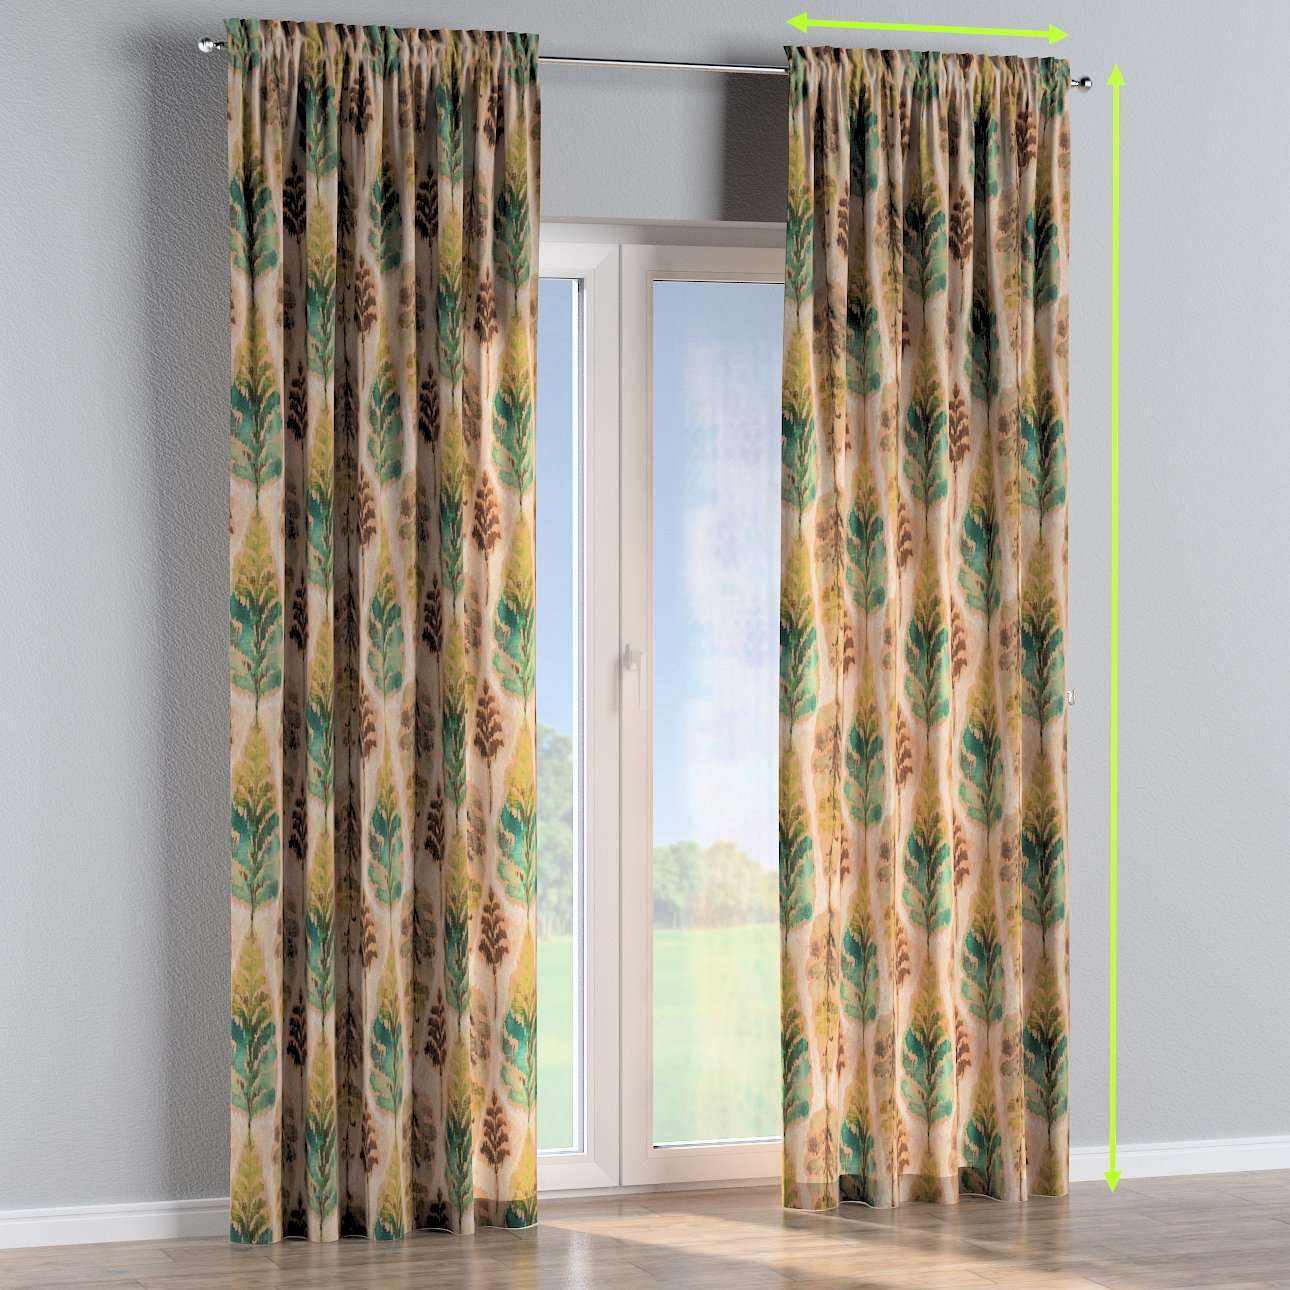 Slot and frill lined curtains in collection Urban Jungle, fabric: 141-60